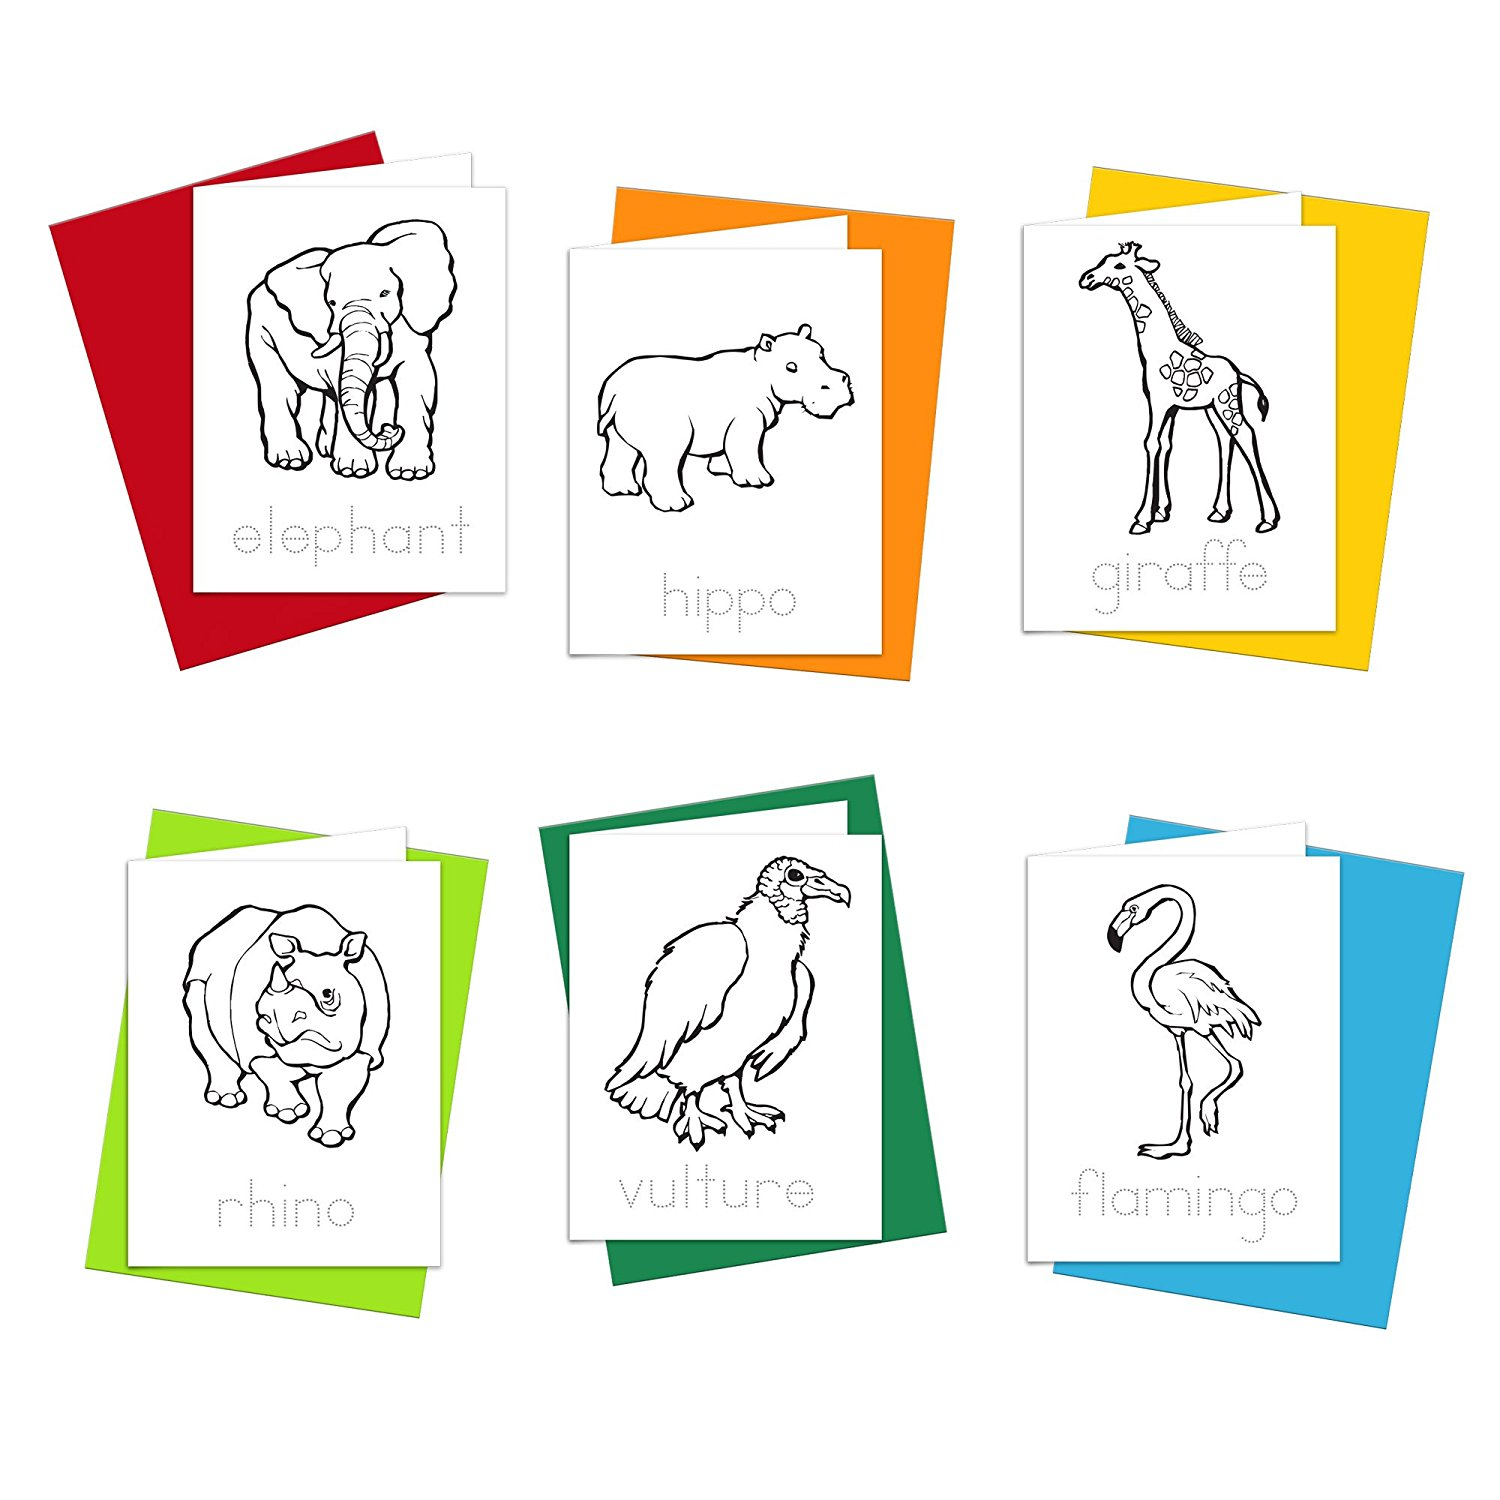 Note Cards - Safari Animals Greeting Cards for Kids to Color, Trace Letters and Practice Writing - Eco-friendly Stationery for Children - 100% Recycled Note Cards with Envelopes – Blank Inside